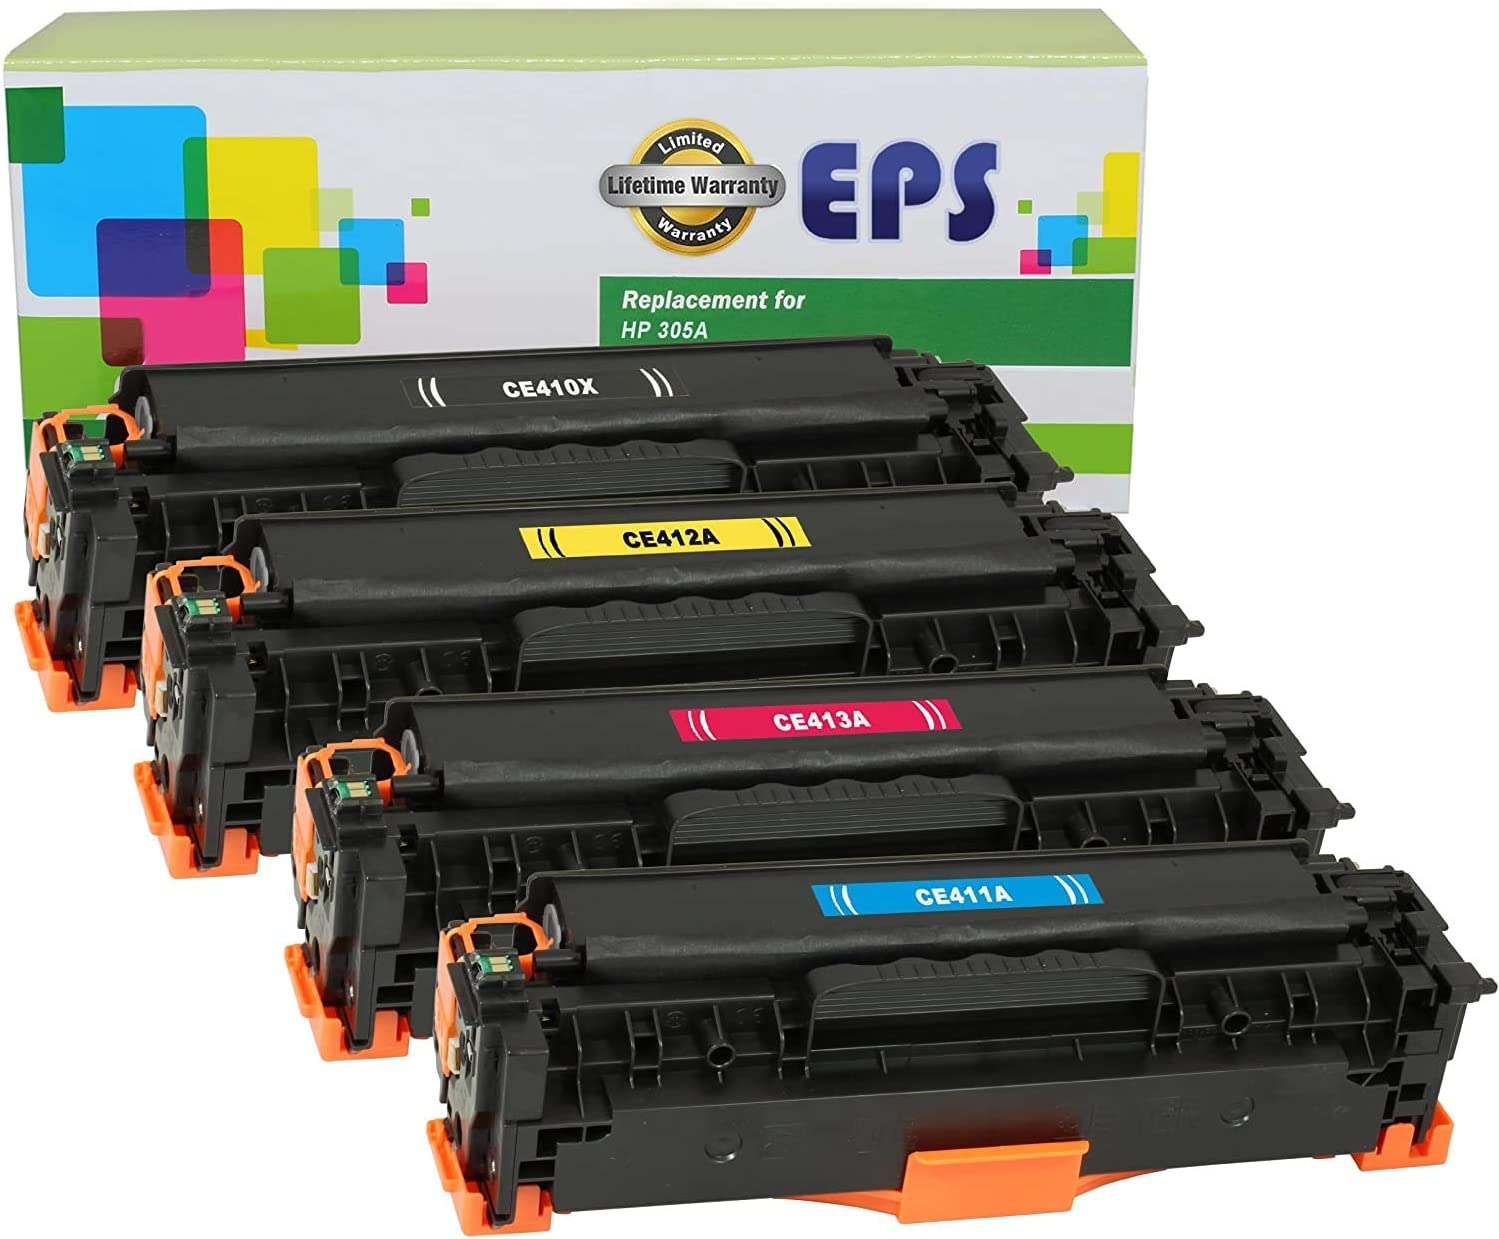 EPS Compatible Toner Cartridge Replacement for HP 305A 305X Laserjet Pro 300 400 Color M451dn, M451dw, M451nw, MFP M475dw, MFP M475dn, MFP M375nw(1B/1C/1M/1Y)